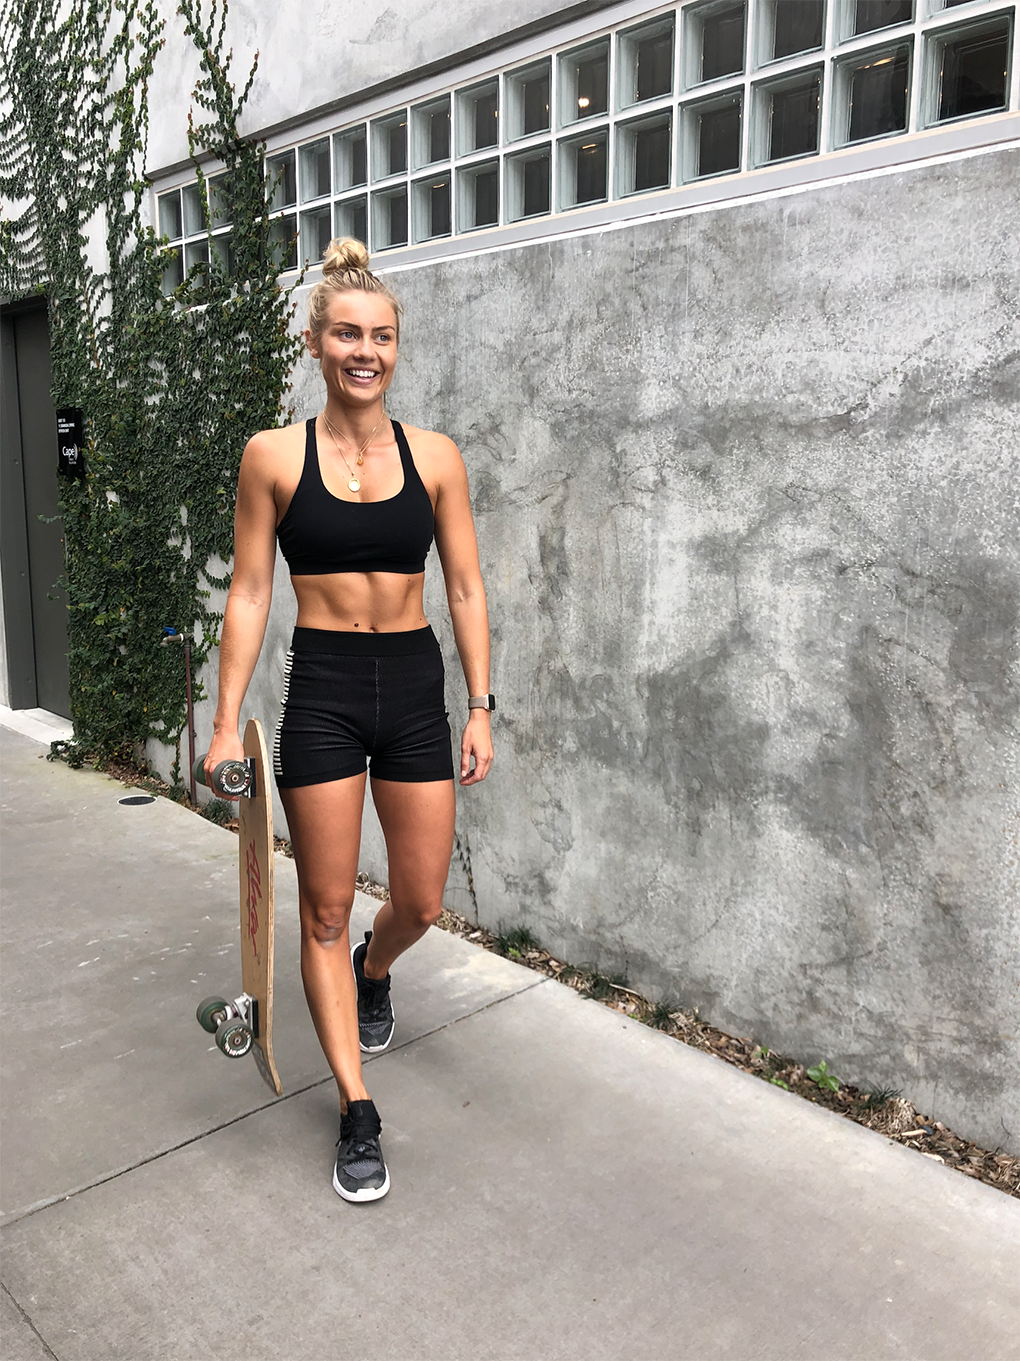 ELYSE KNOWLES SKATEBOARD WORKOUT OCT 2019 3.png